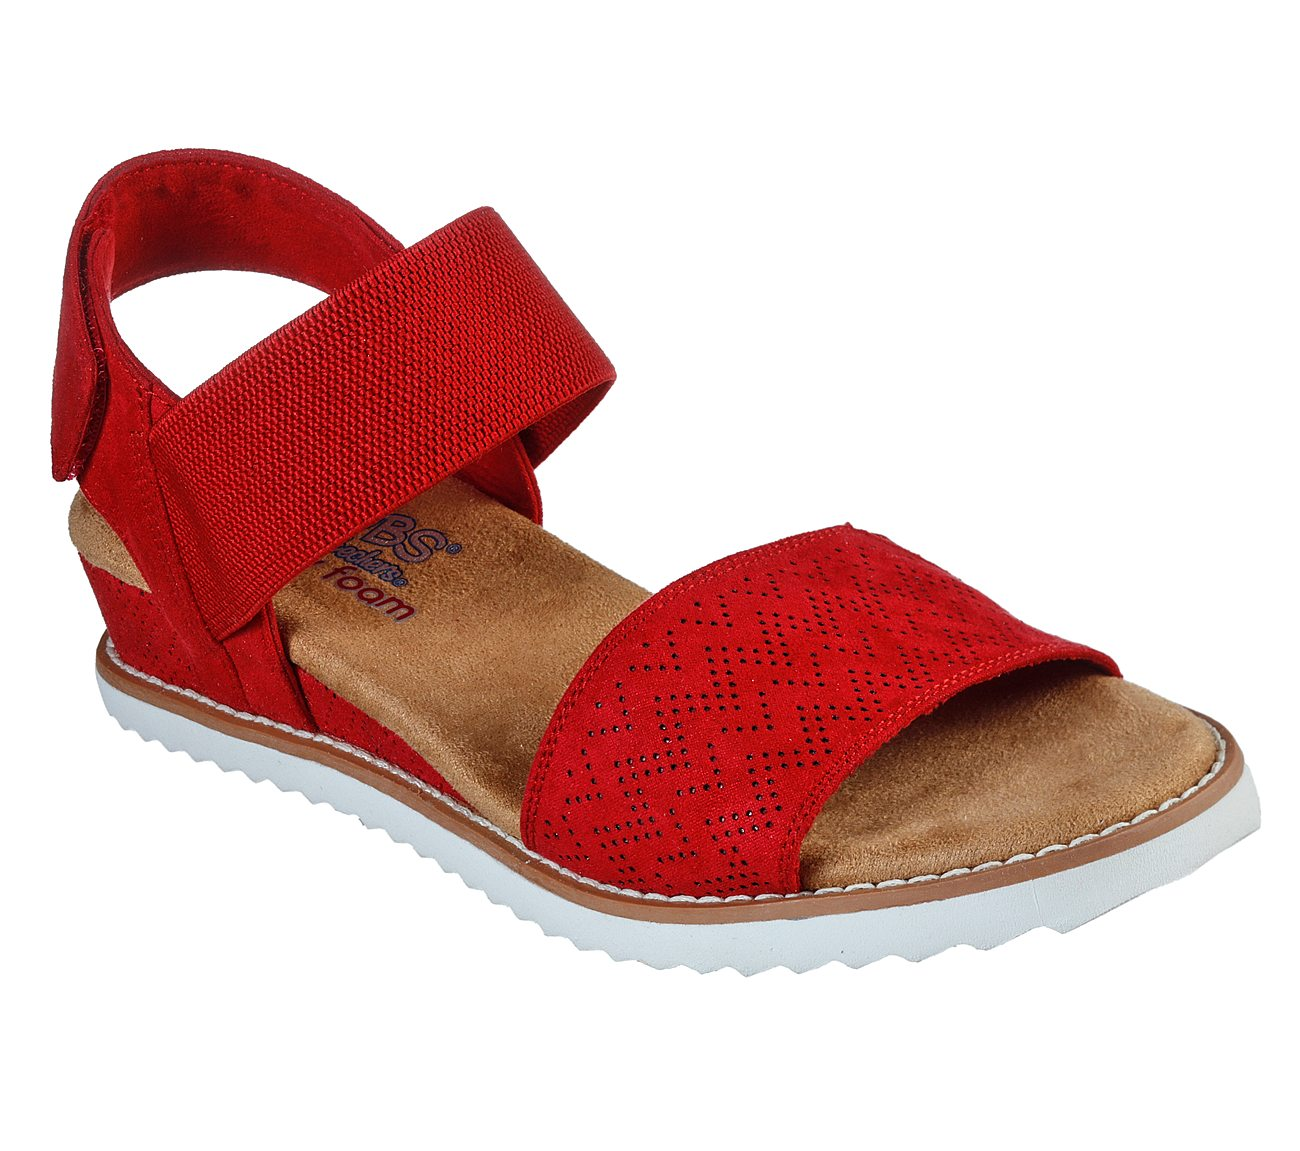 affa73cb0de1 Buy SKECHERS BOBS Desert Kiss BOBS Shoes only  50.00